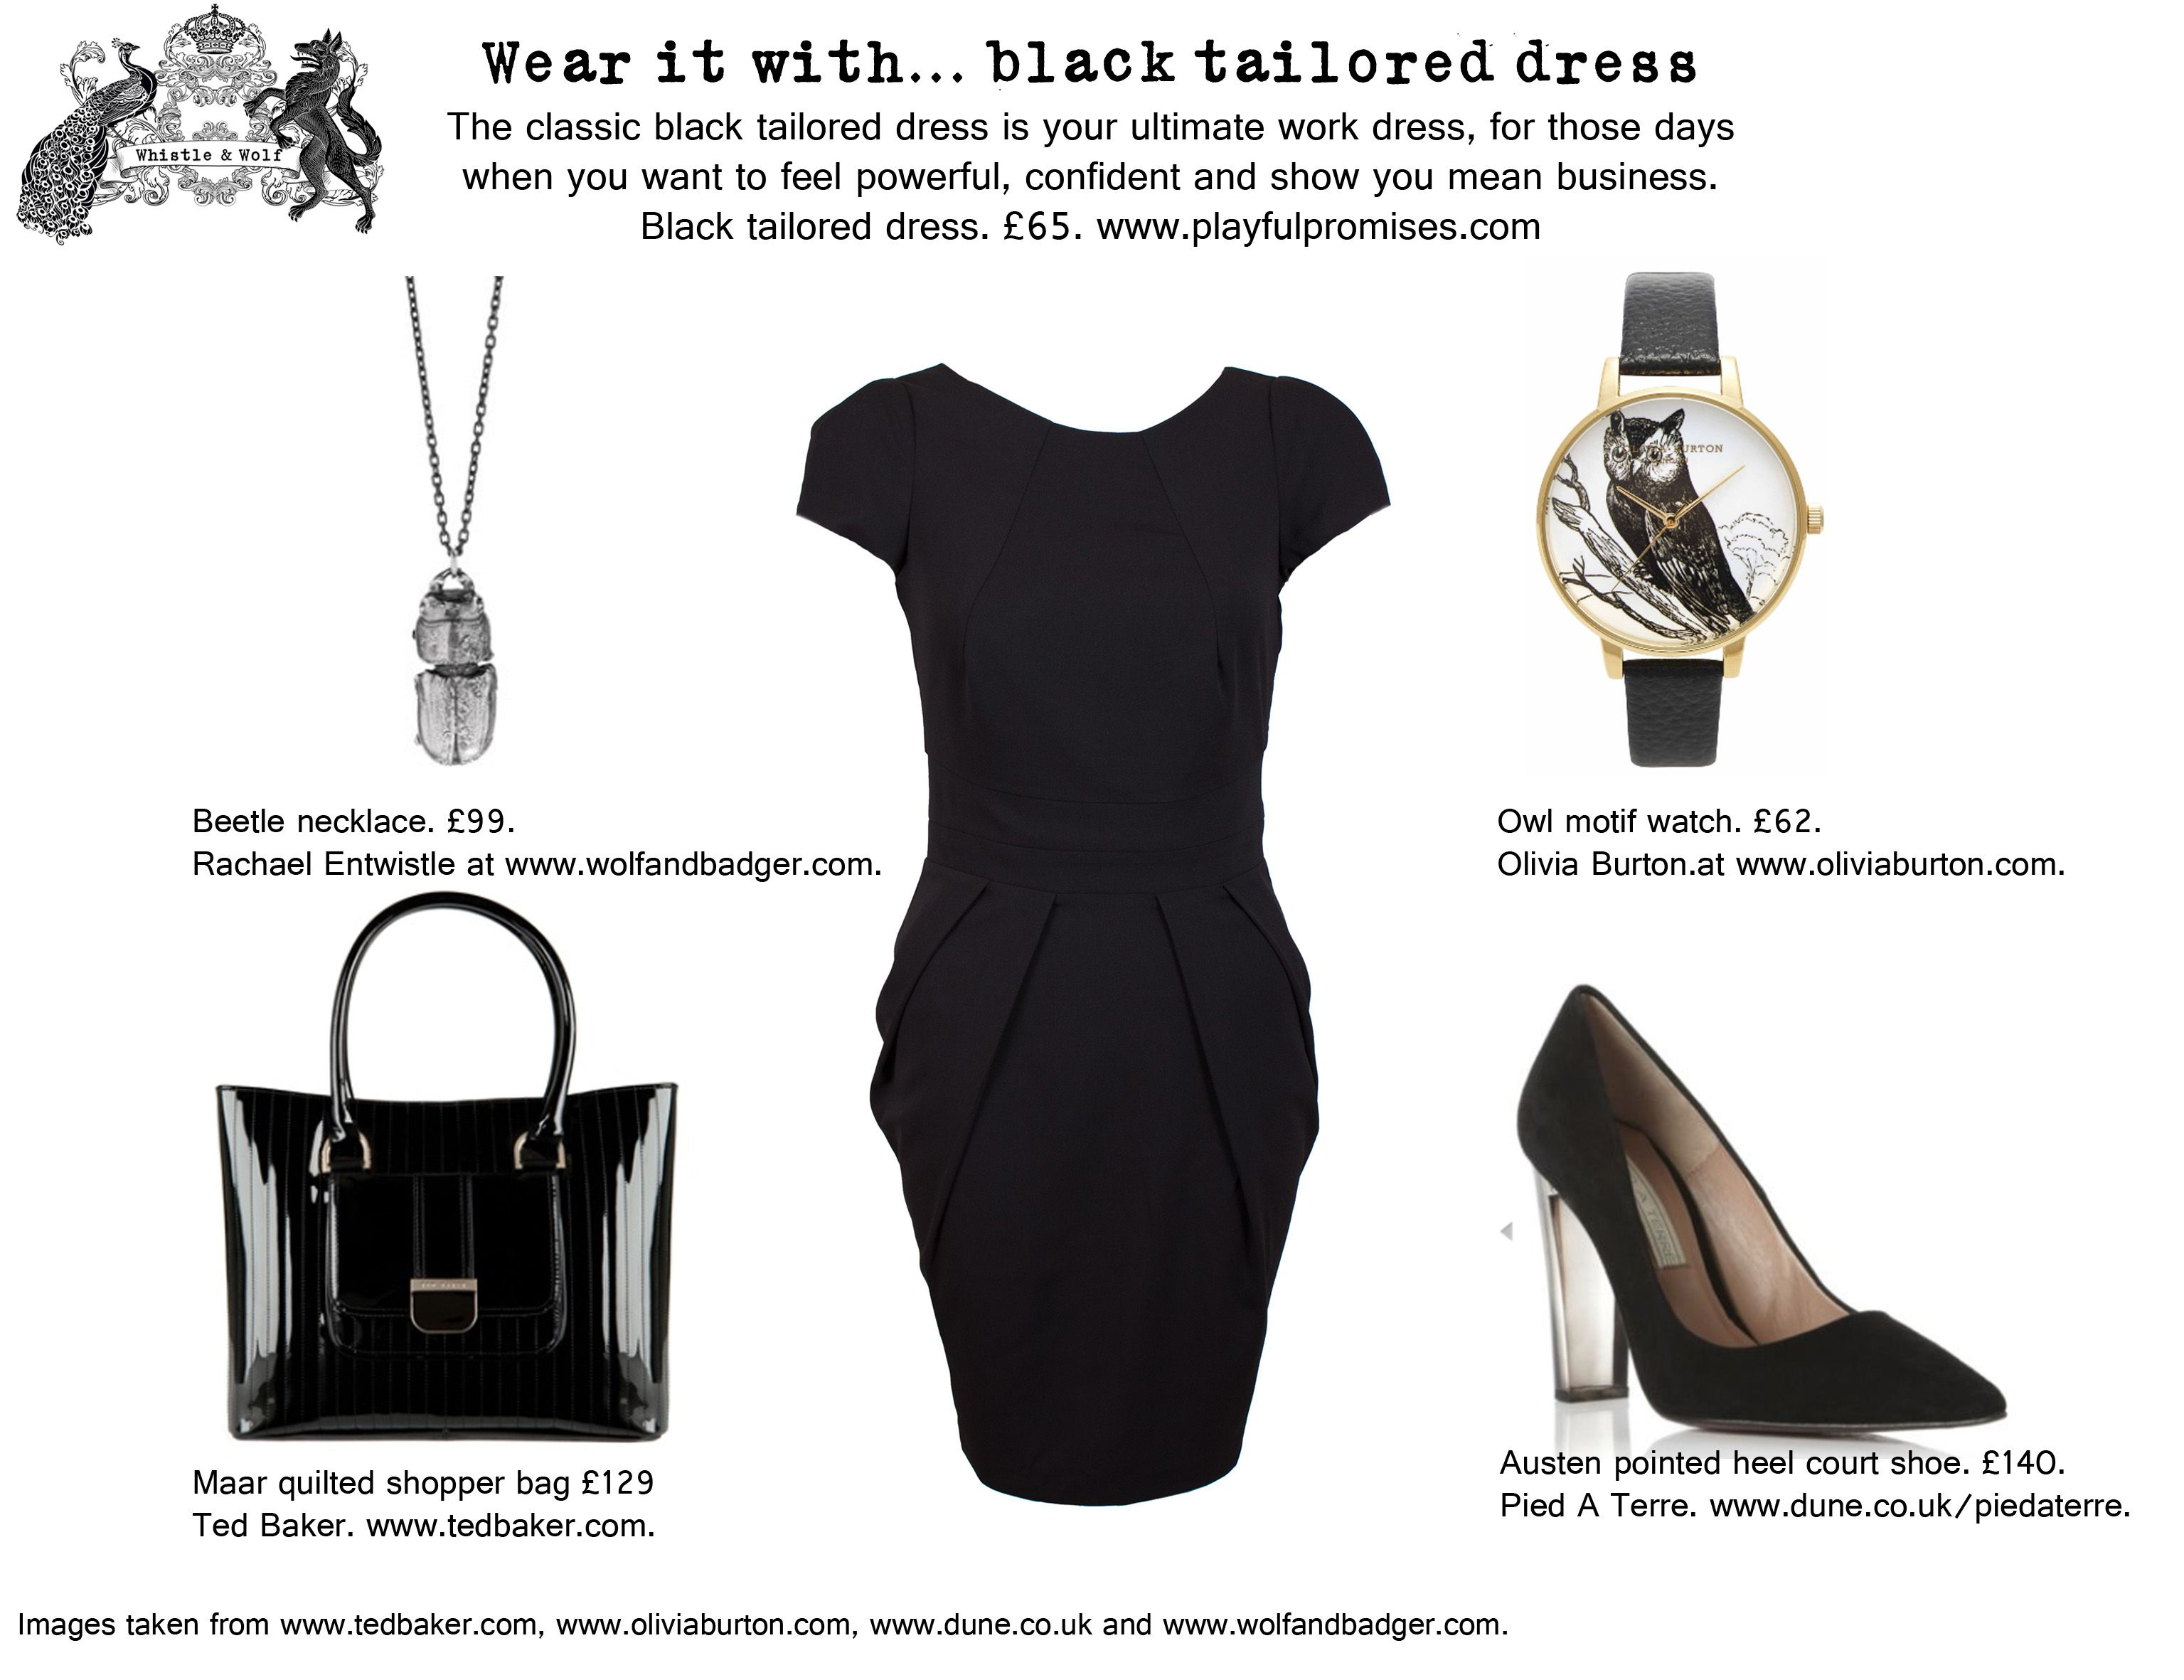 Planning what to wear for that important meeting next week? See our what to wear guide for the classic black tailored dress. Featuring Beetle necklace from Rachael Entwistle at www.wolfandbadger.com, Owl motif watch from www.oliviaburton.com, Quilted shopper bag from www.tedbaker.com and Perspex heel pointed shoes from www.dune.co.uk/piedaterre.